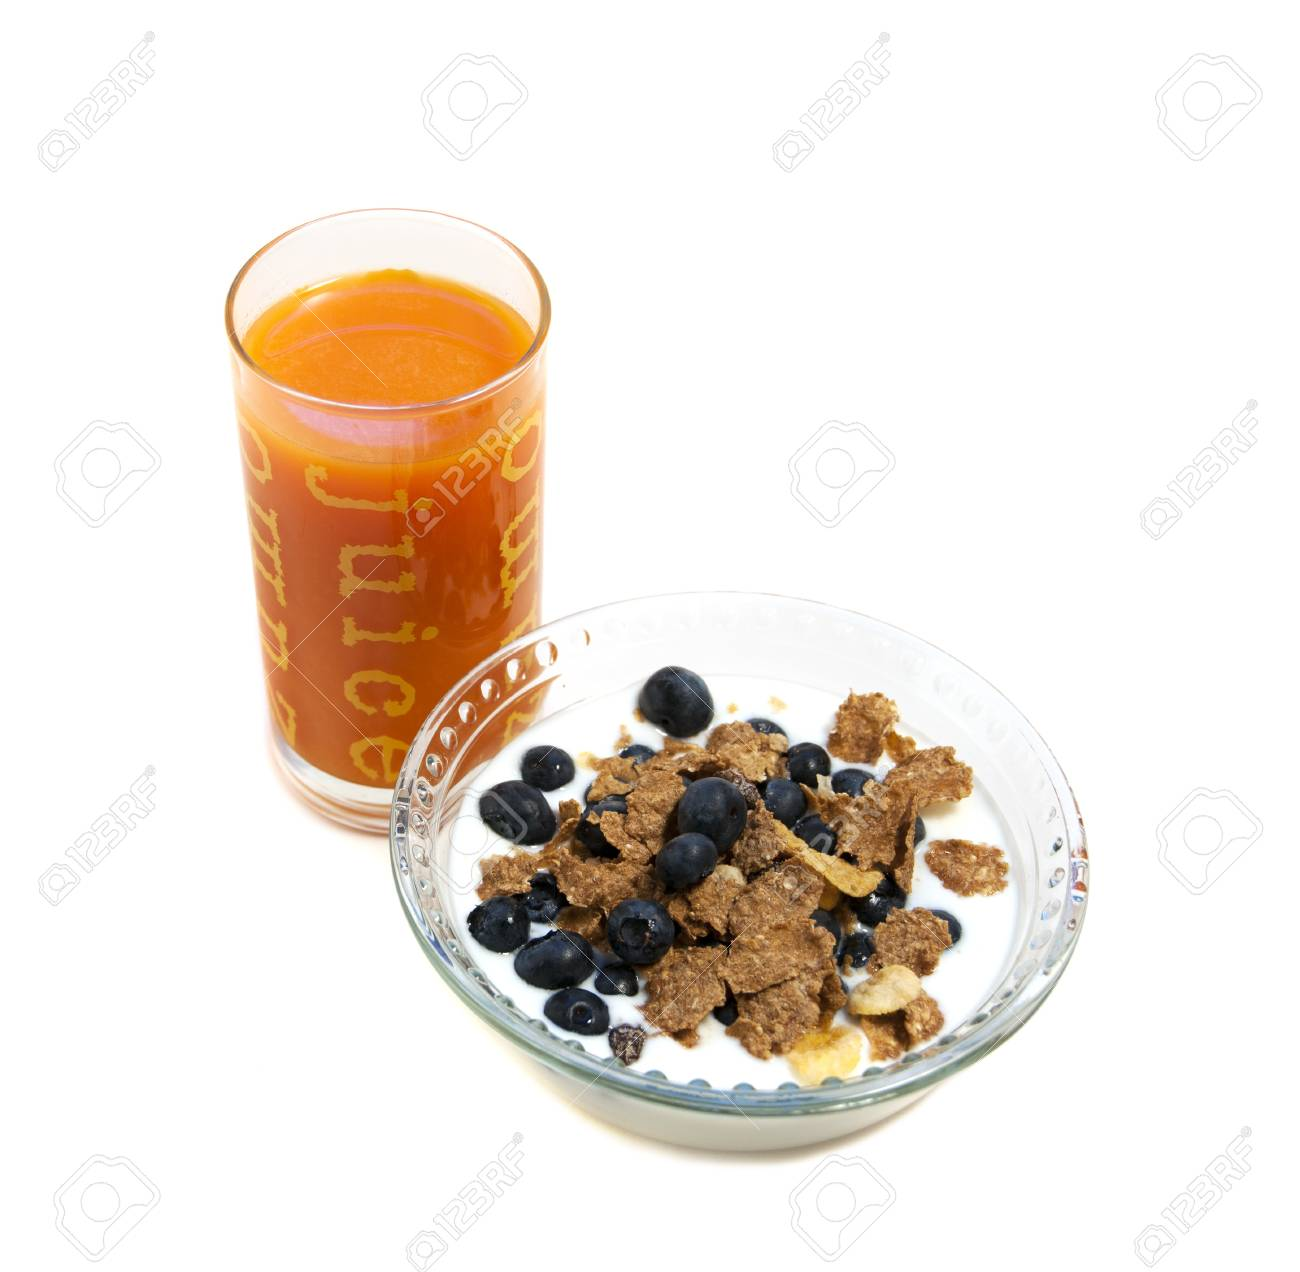 o.j. and blueberry whole wheat cereal breakfast - 9651299